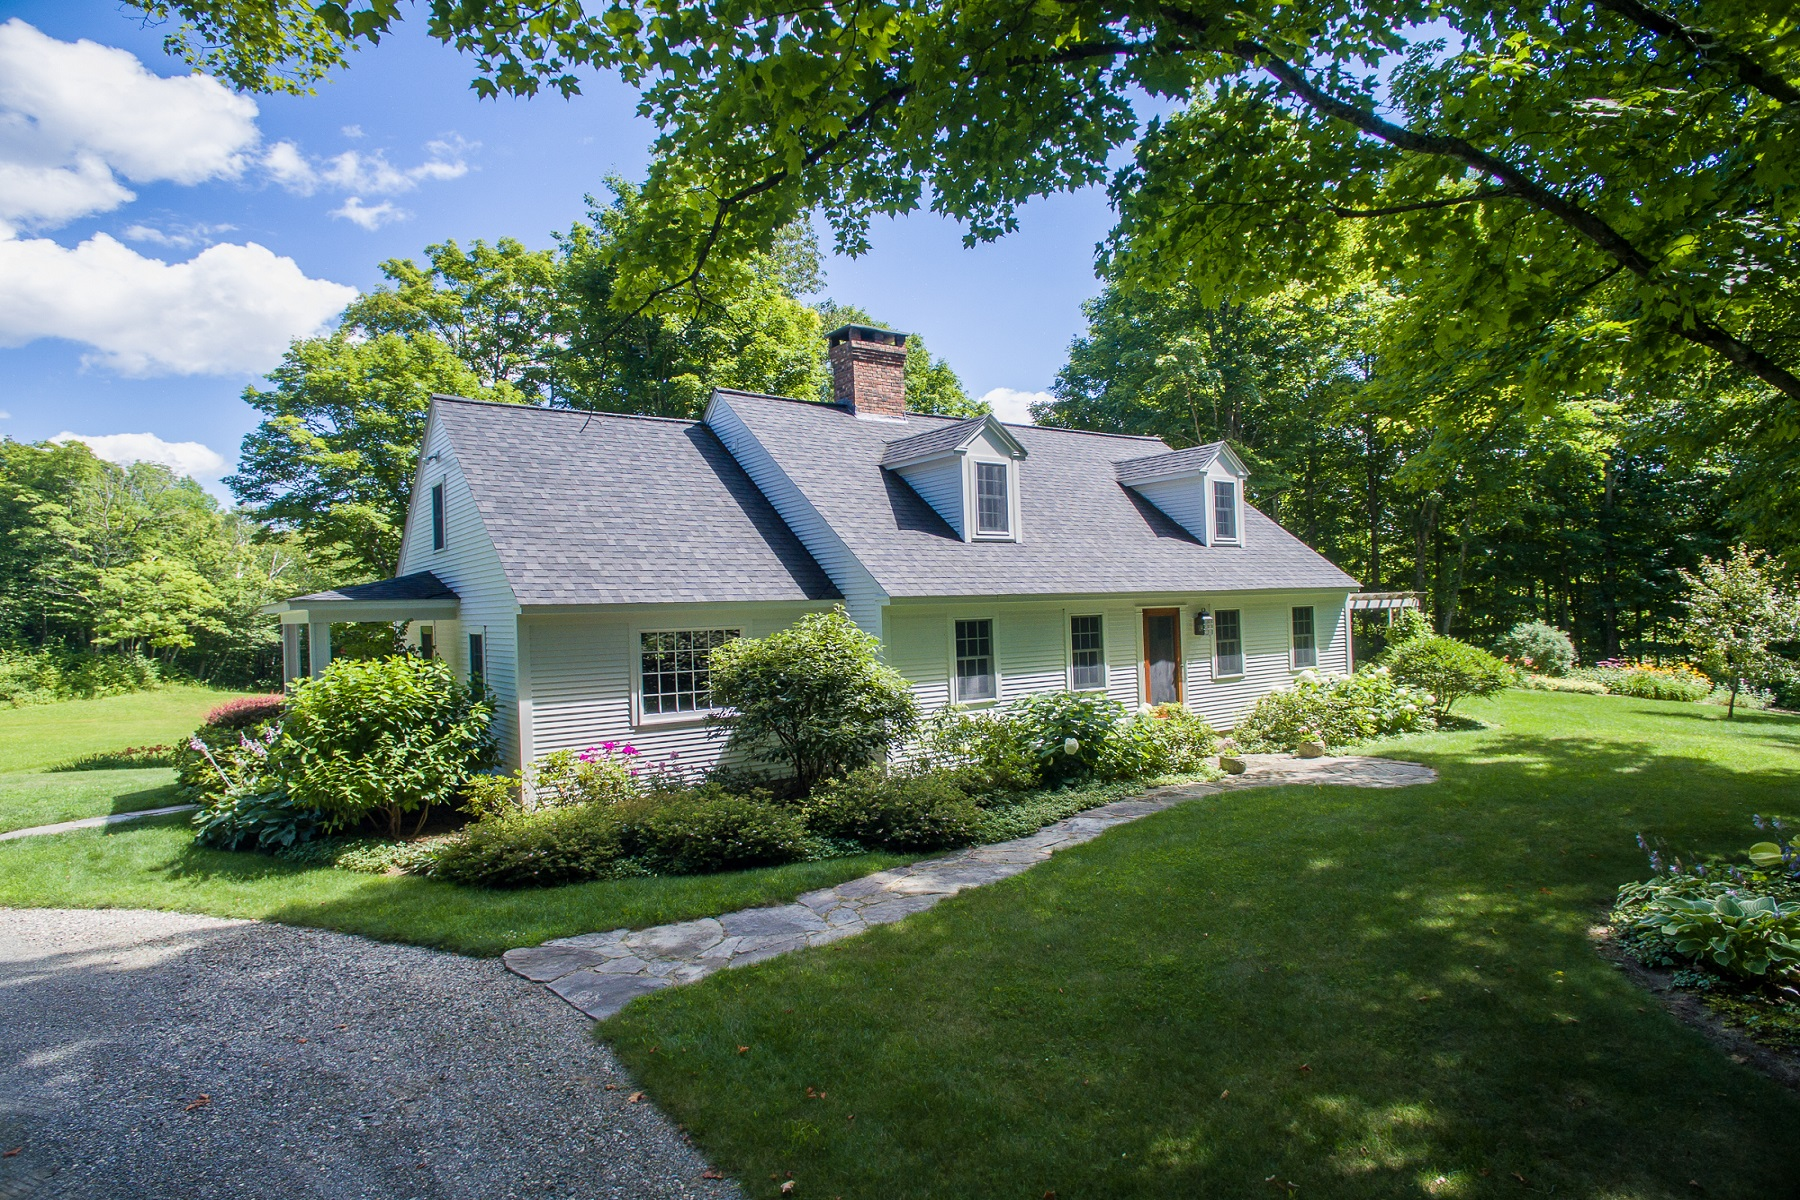 Single Family Home for Sale at Traditional Cape 944 South Perry Road Barnard, Vermont, 05031 United States